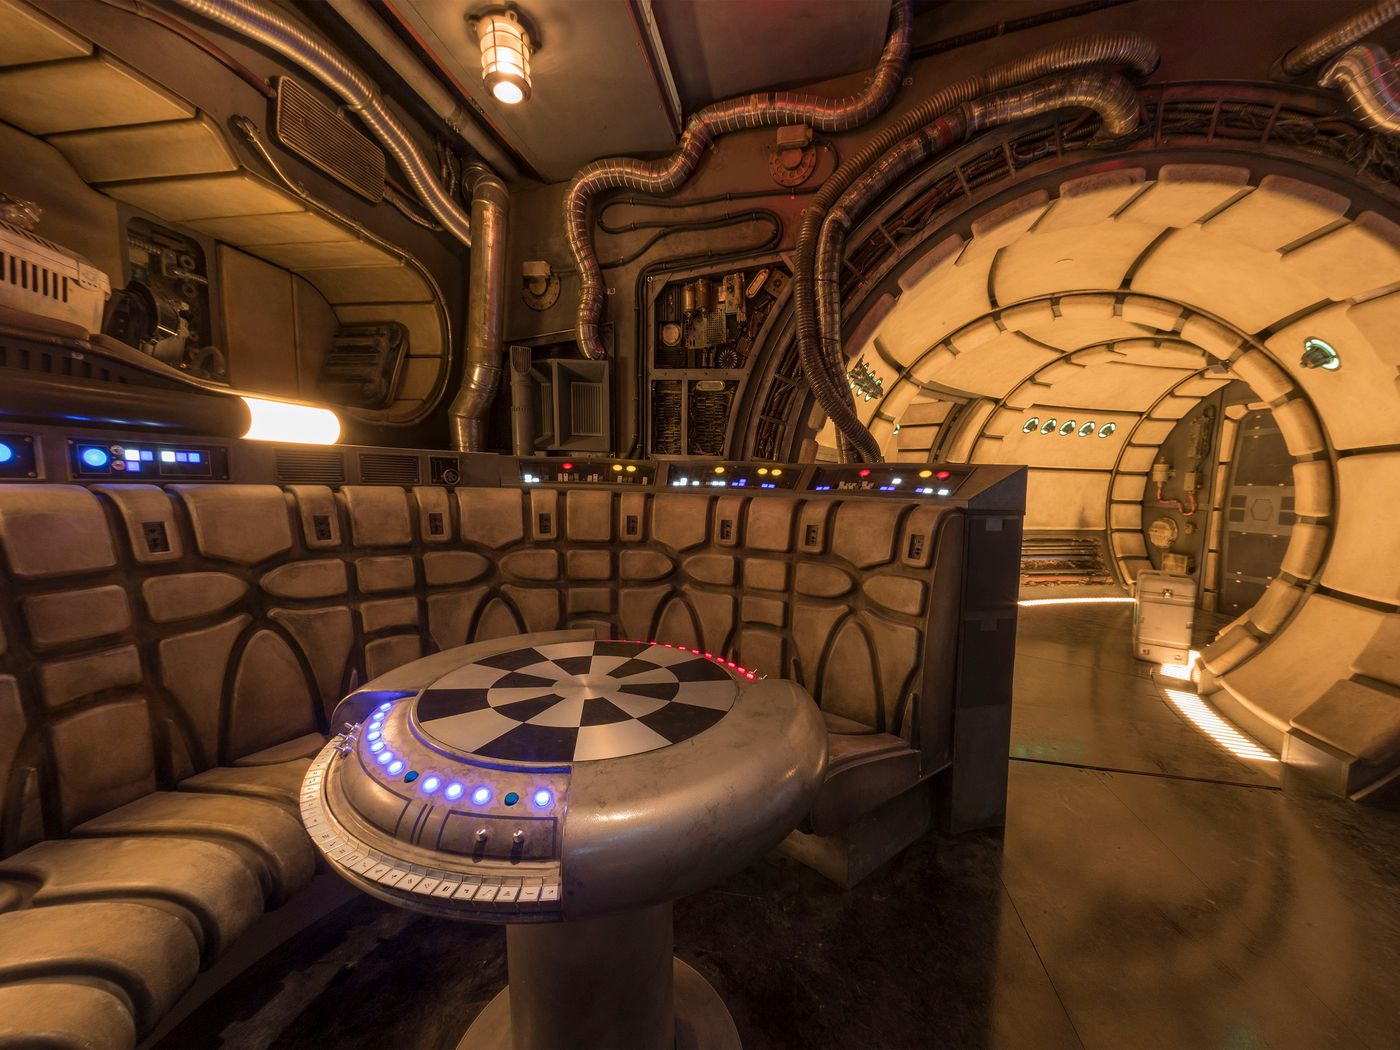 Disney S Star Wars Land Will Open May In California August In Florida Polygon